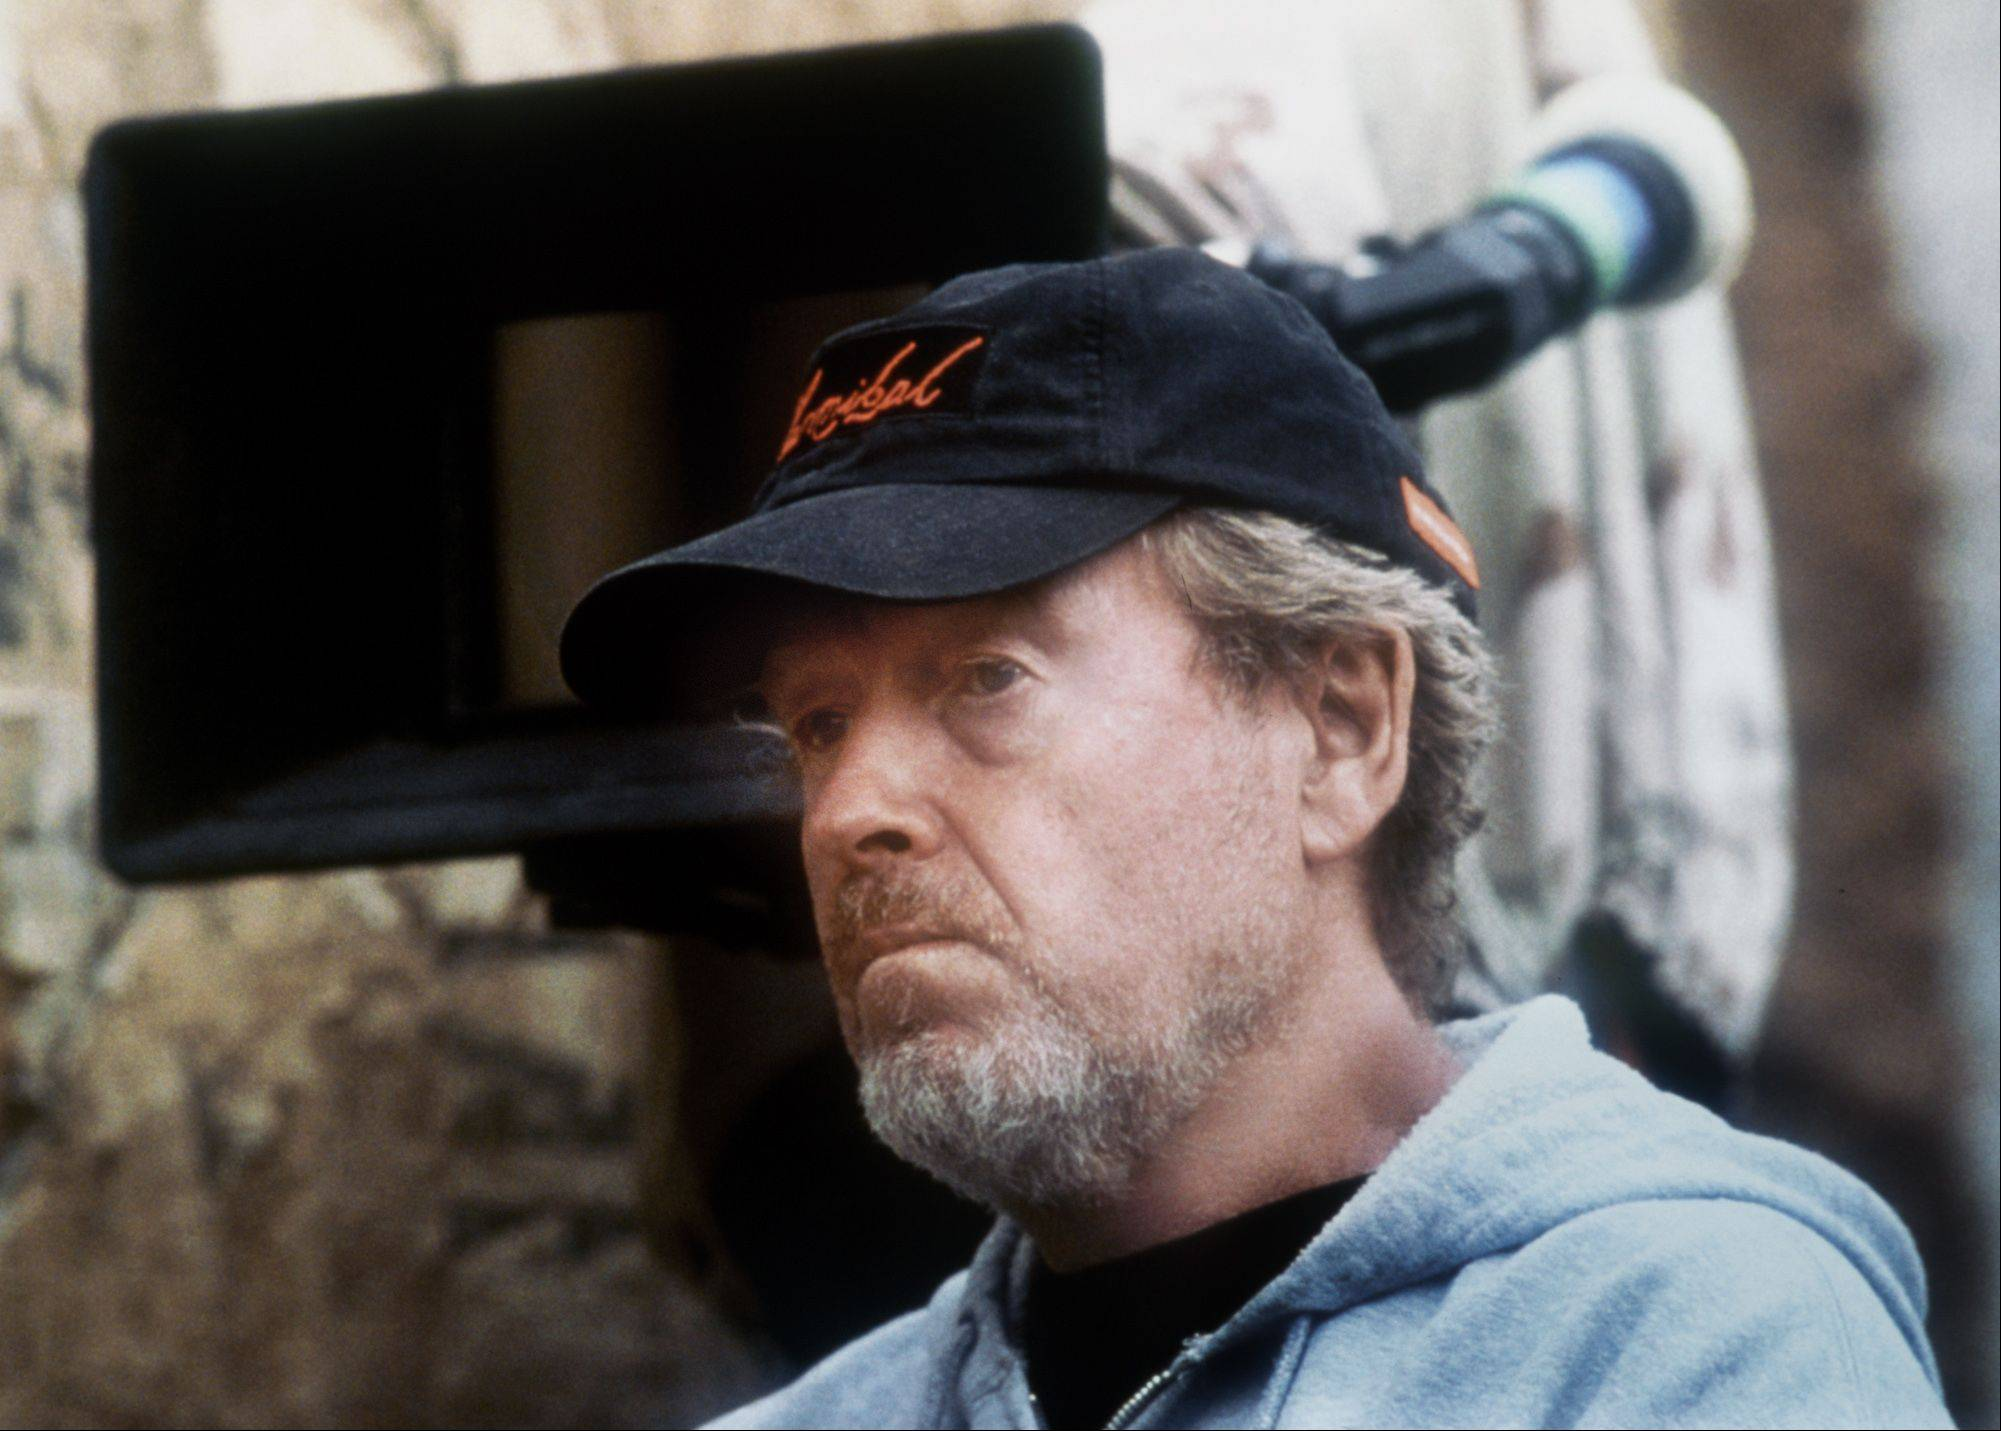 British director Ridley Scott often goes the extra mile for the home-video releases of his films, providing extensive documentary footage and alternate versions.